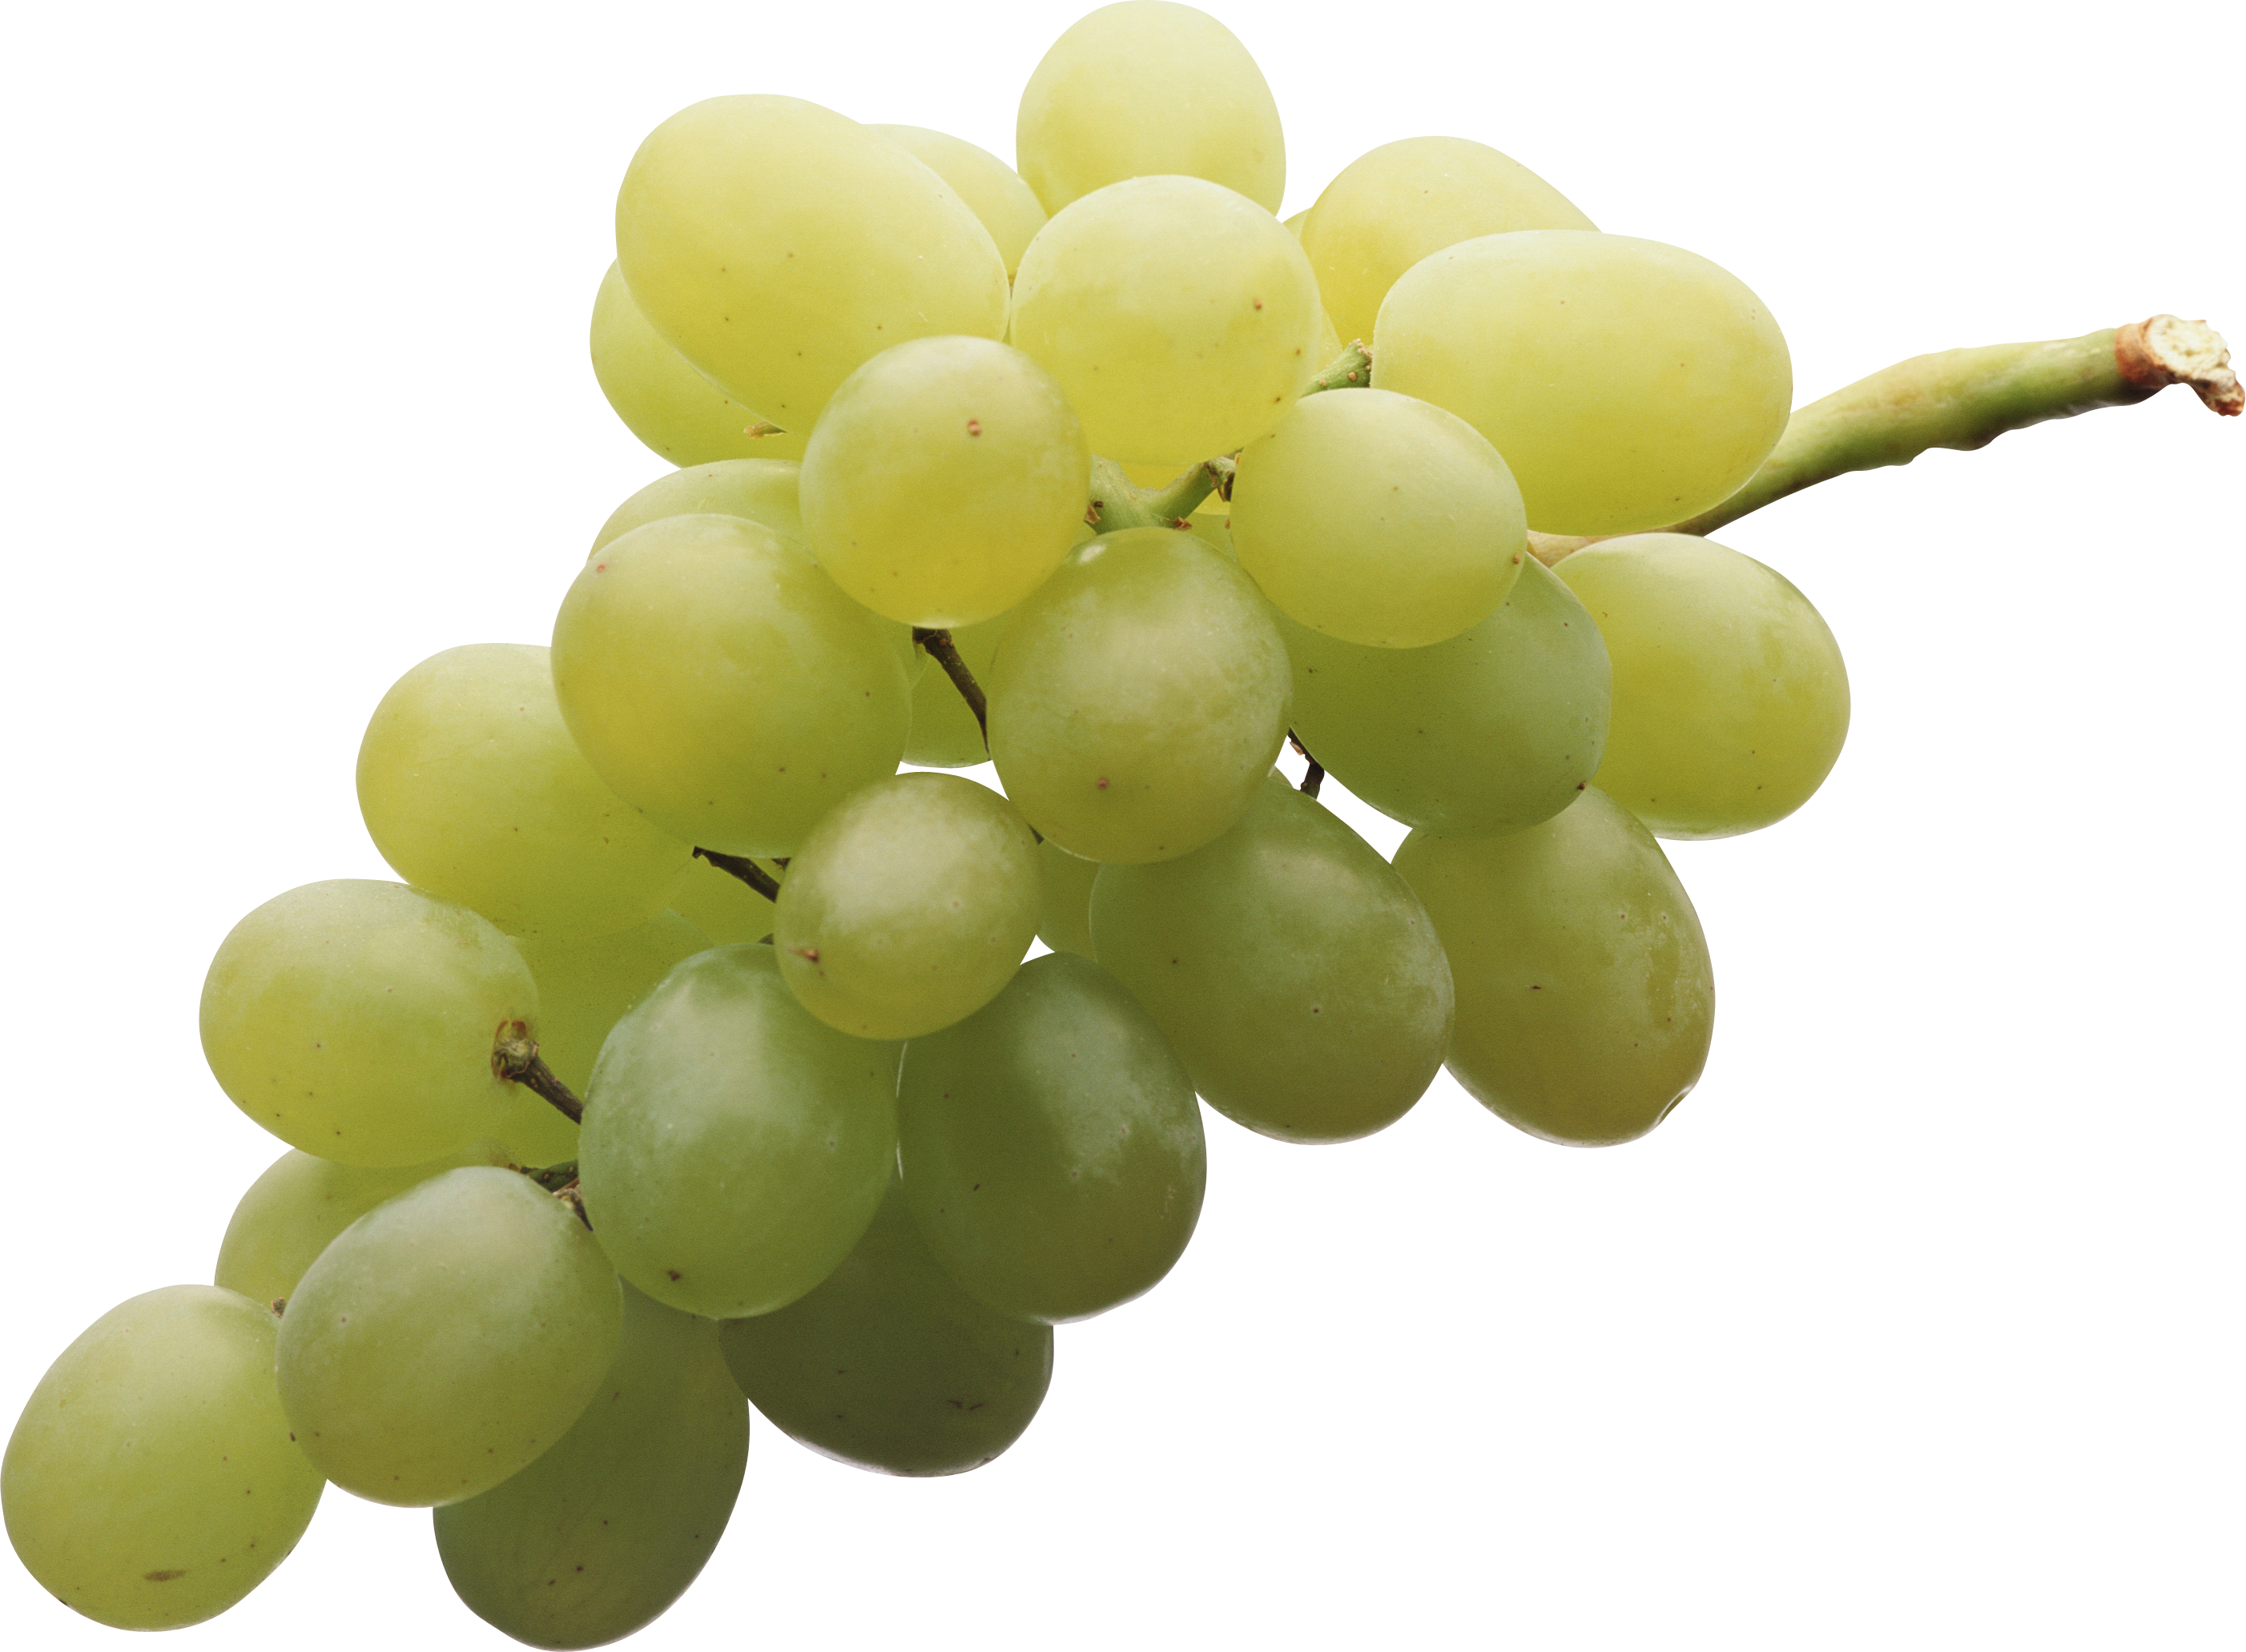 Grape clipart yellow. Png web icons